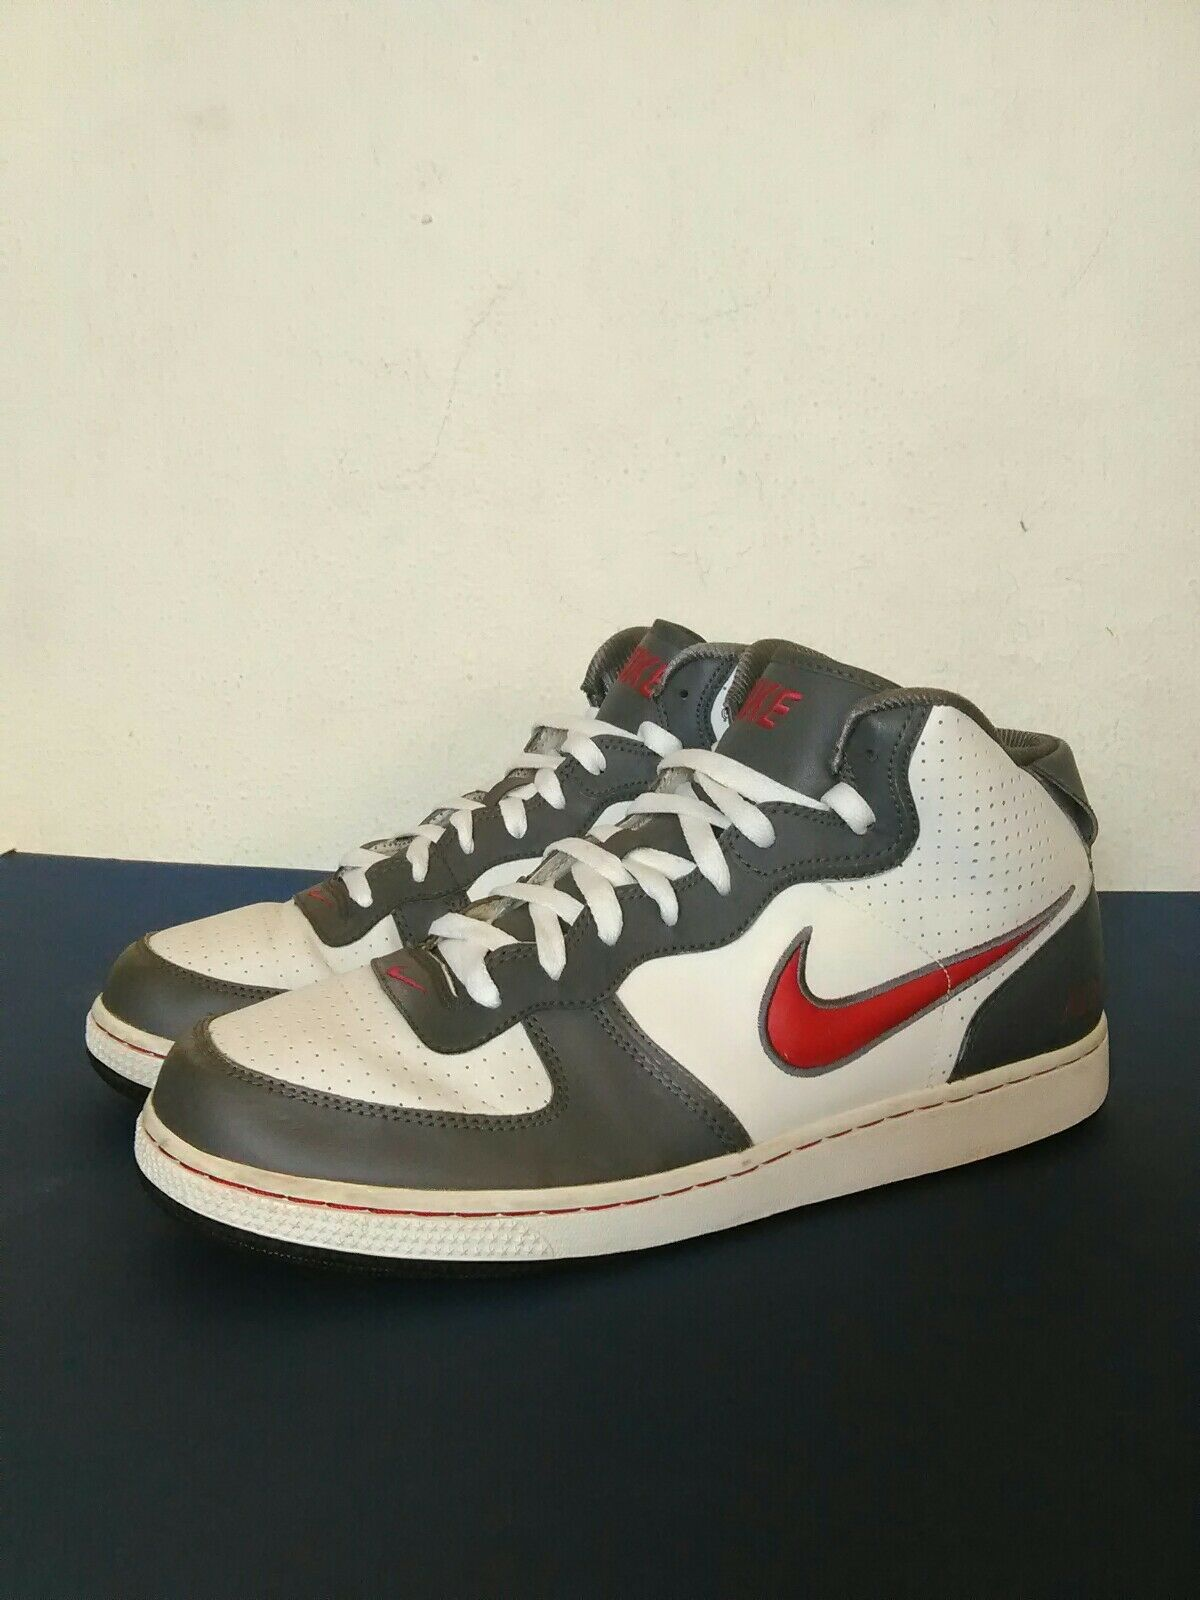 Great discount Nike air basketball men shoes gray/ white size: 11